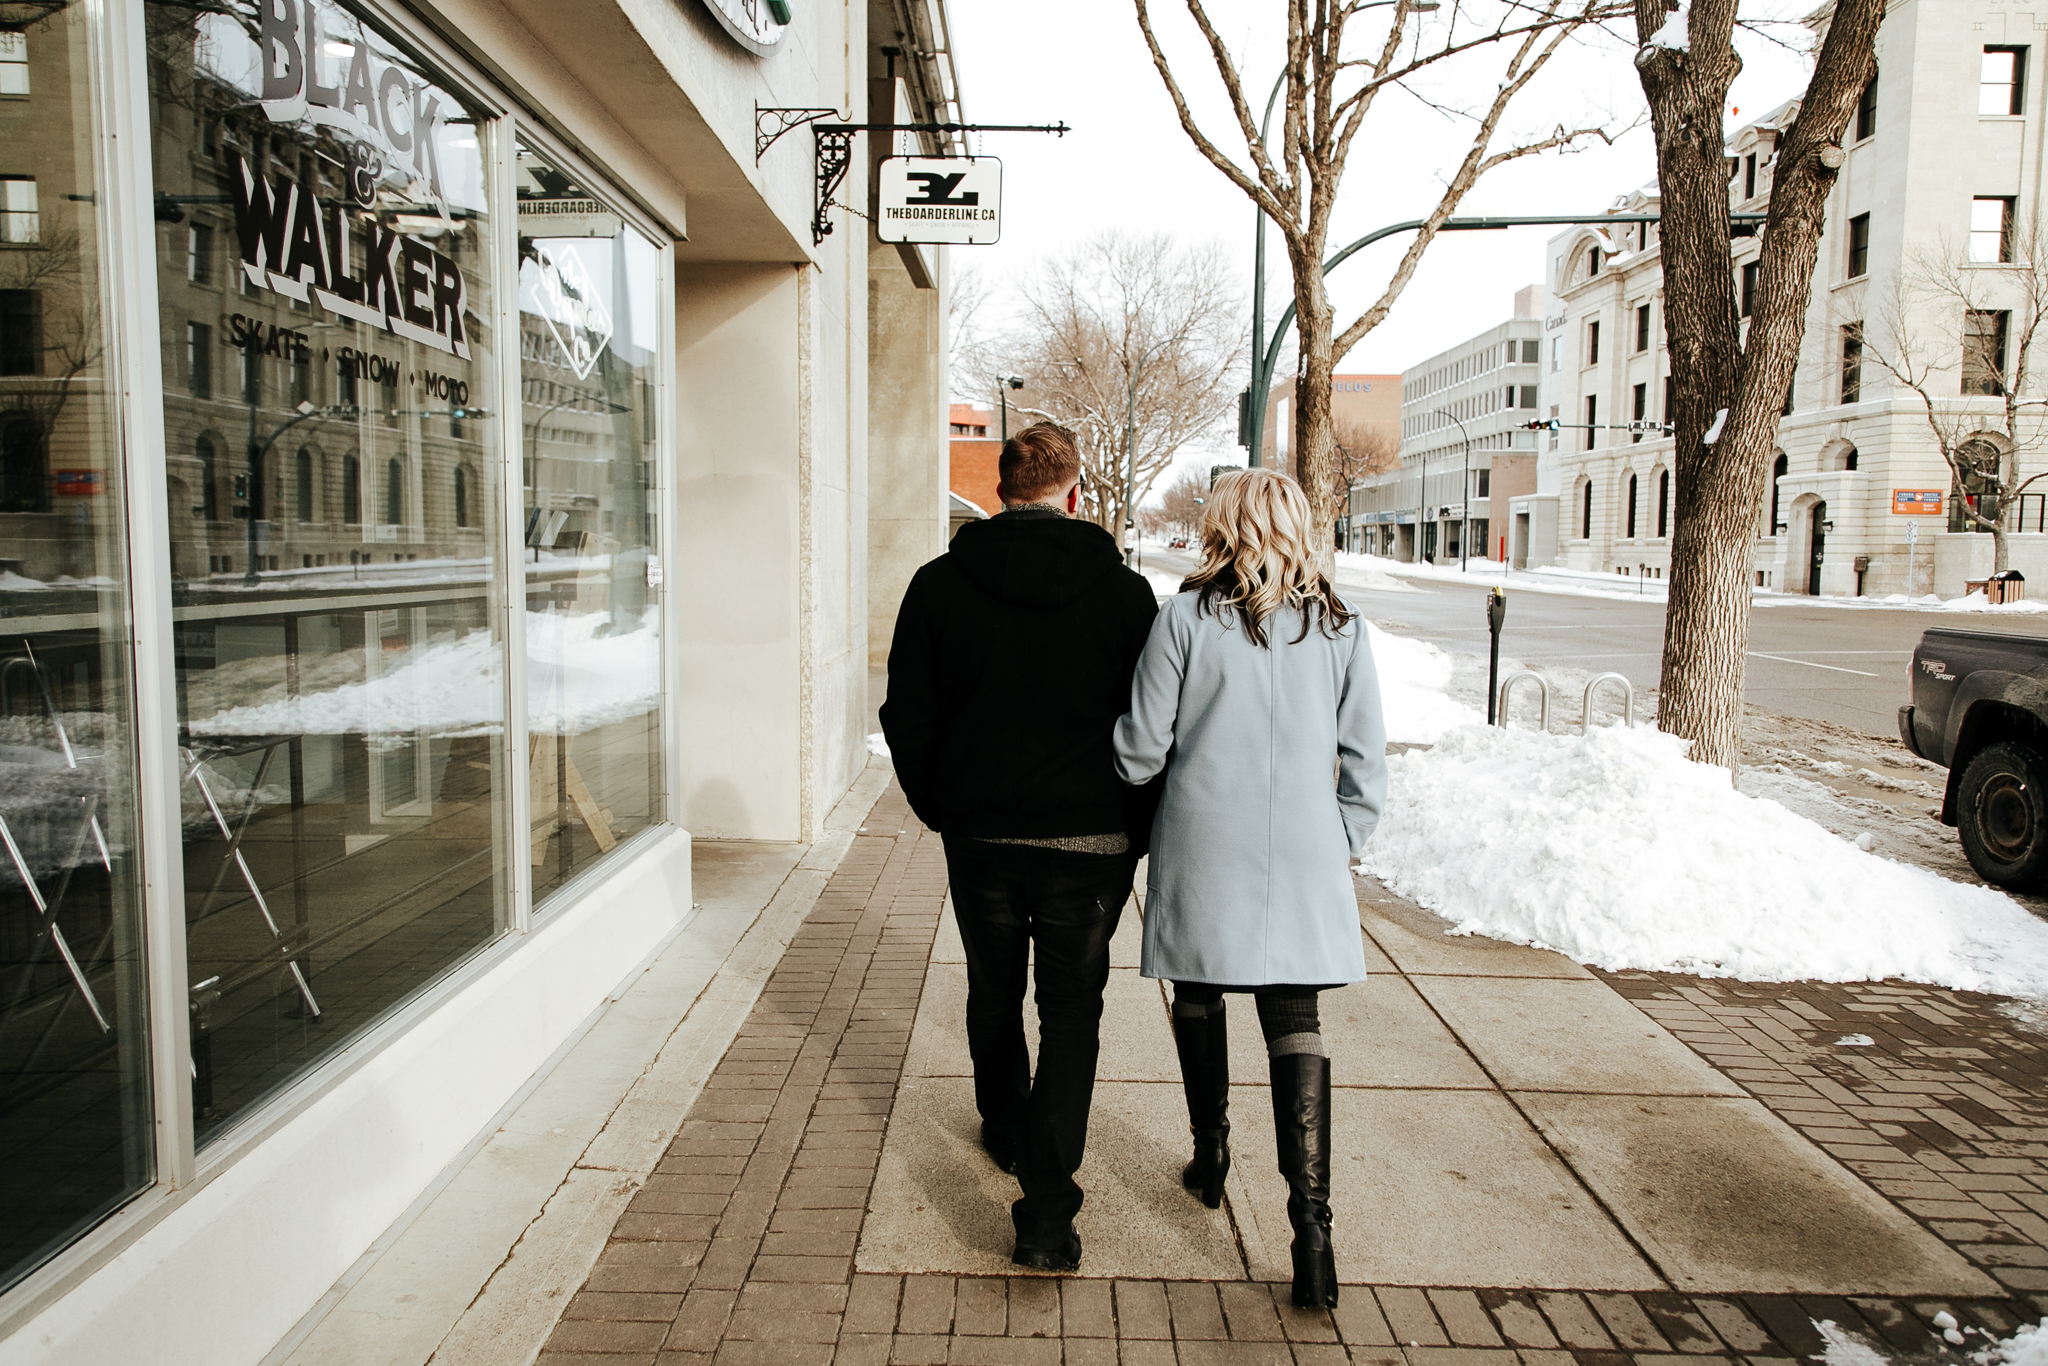 lethbridge-photographer-love-and-be-loved-photography-brandon-danielle-winter-engagement-downtown-yql-picture-image-photo-25.jpg